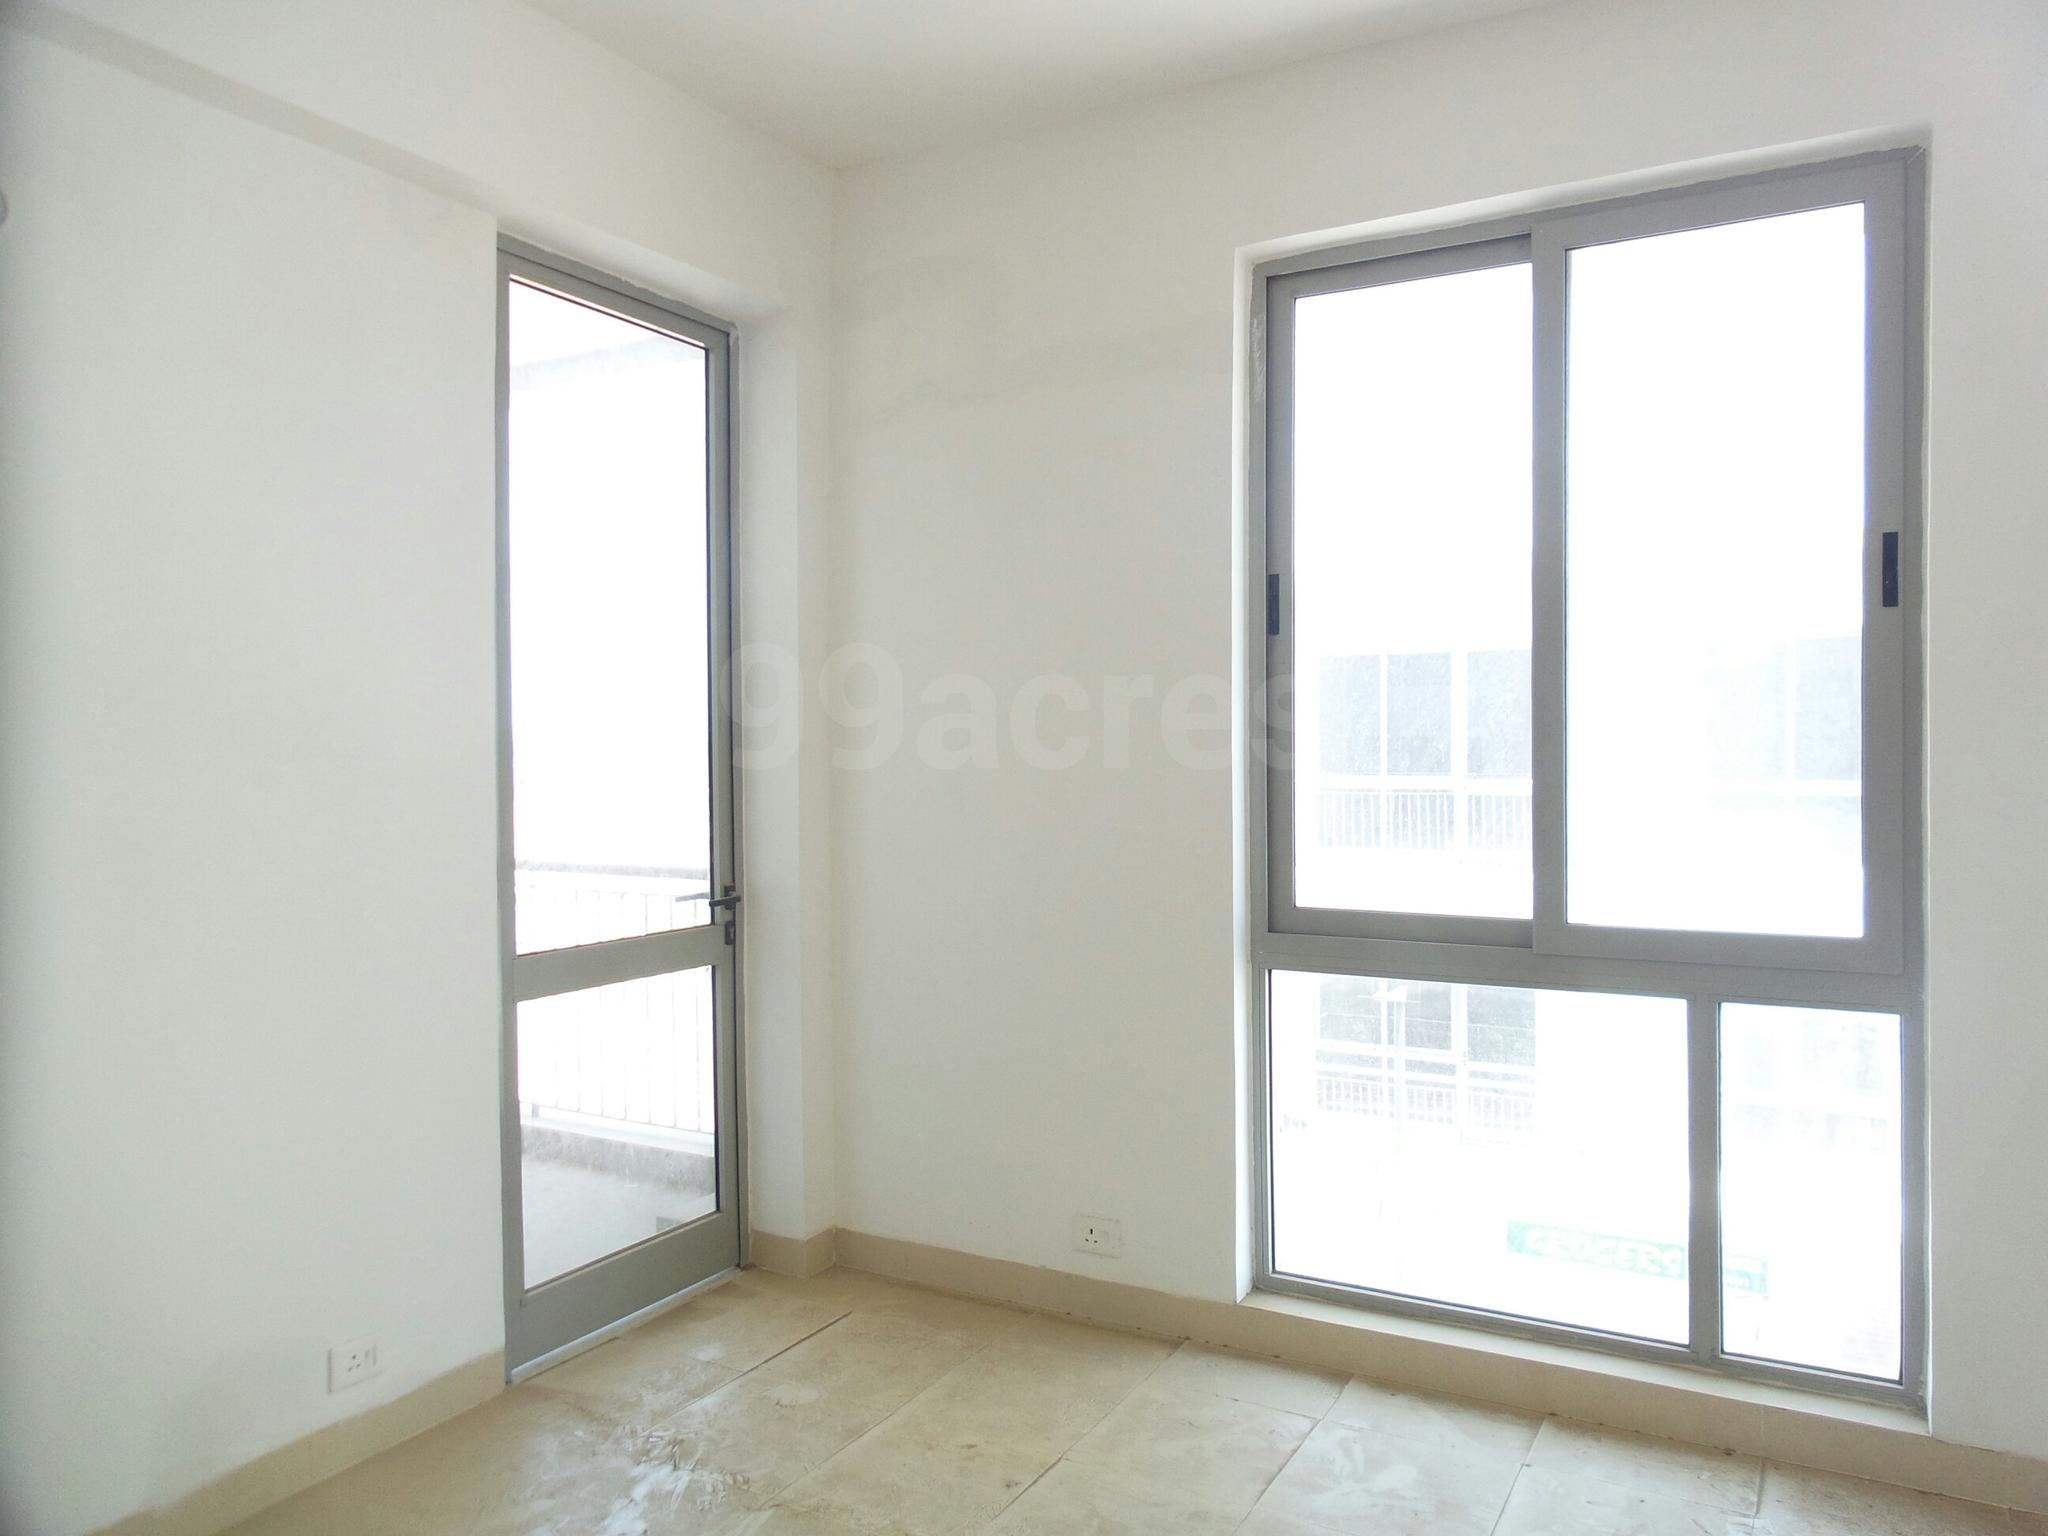 3 BHK 1720 Sq.Ft. Apartment in Emaar Palm Gardens